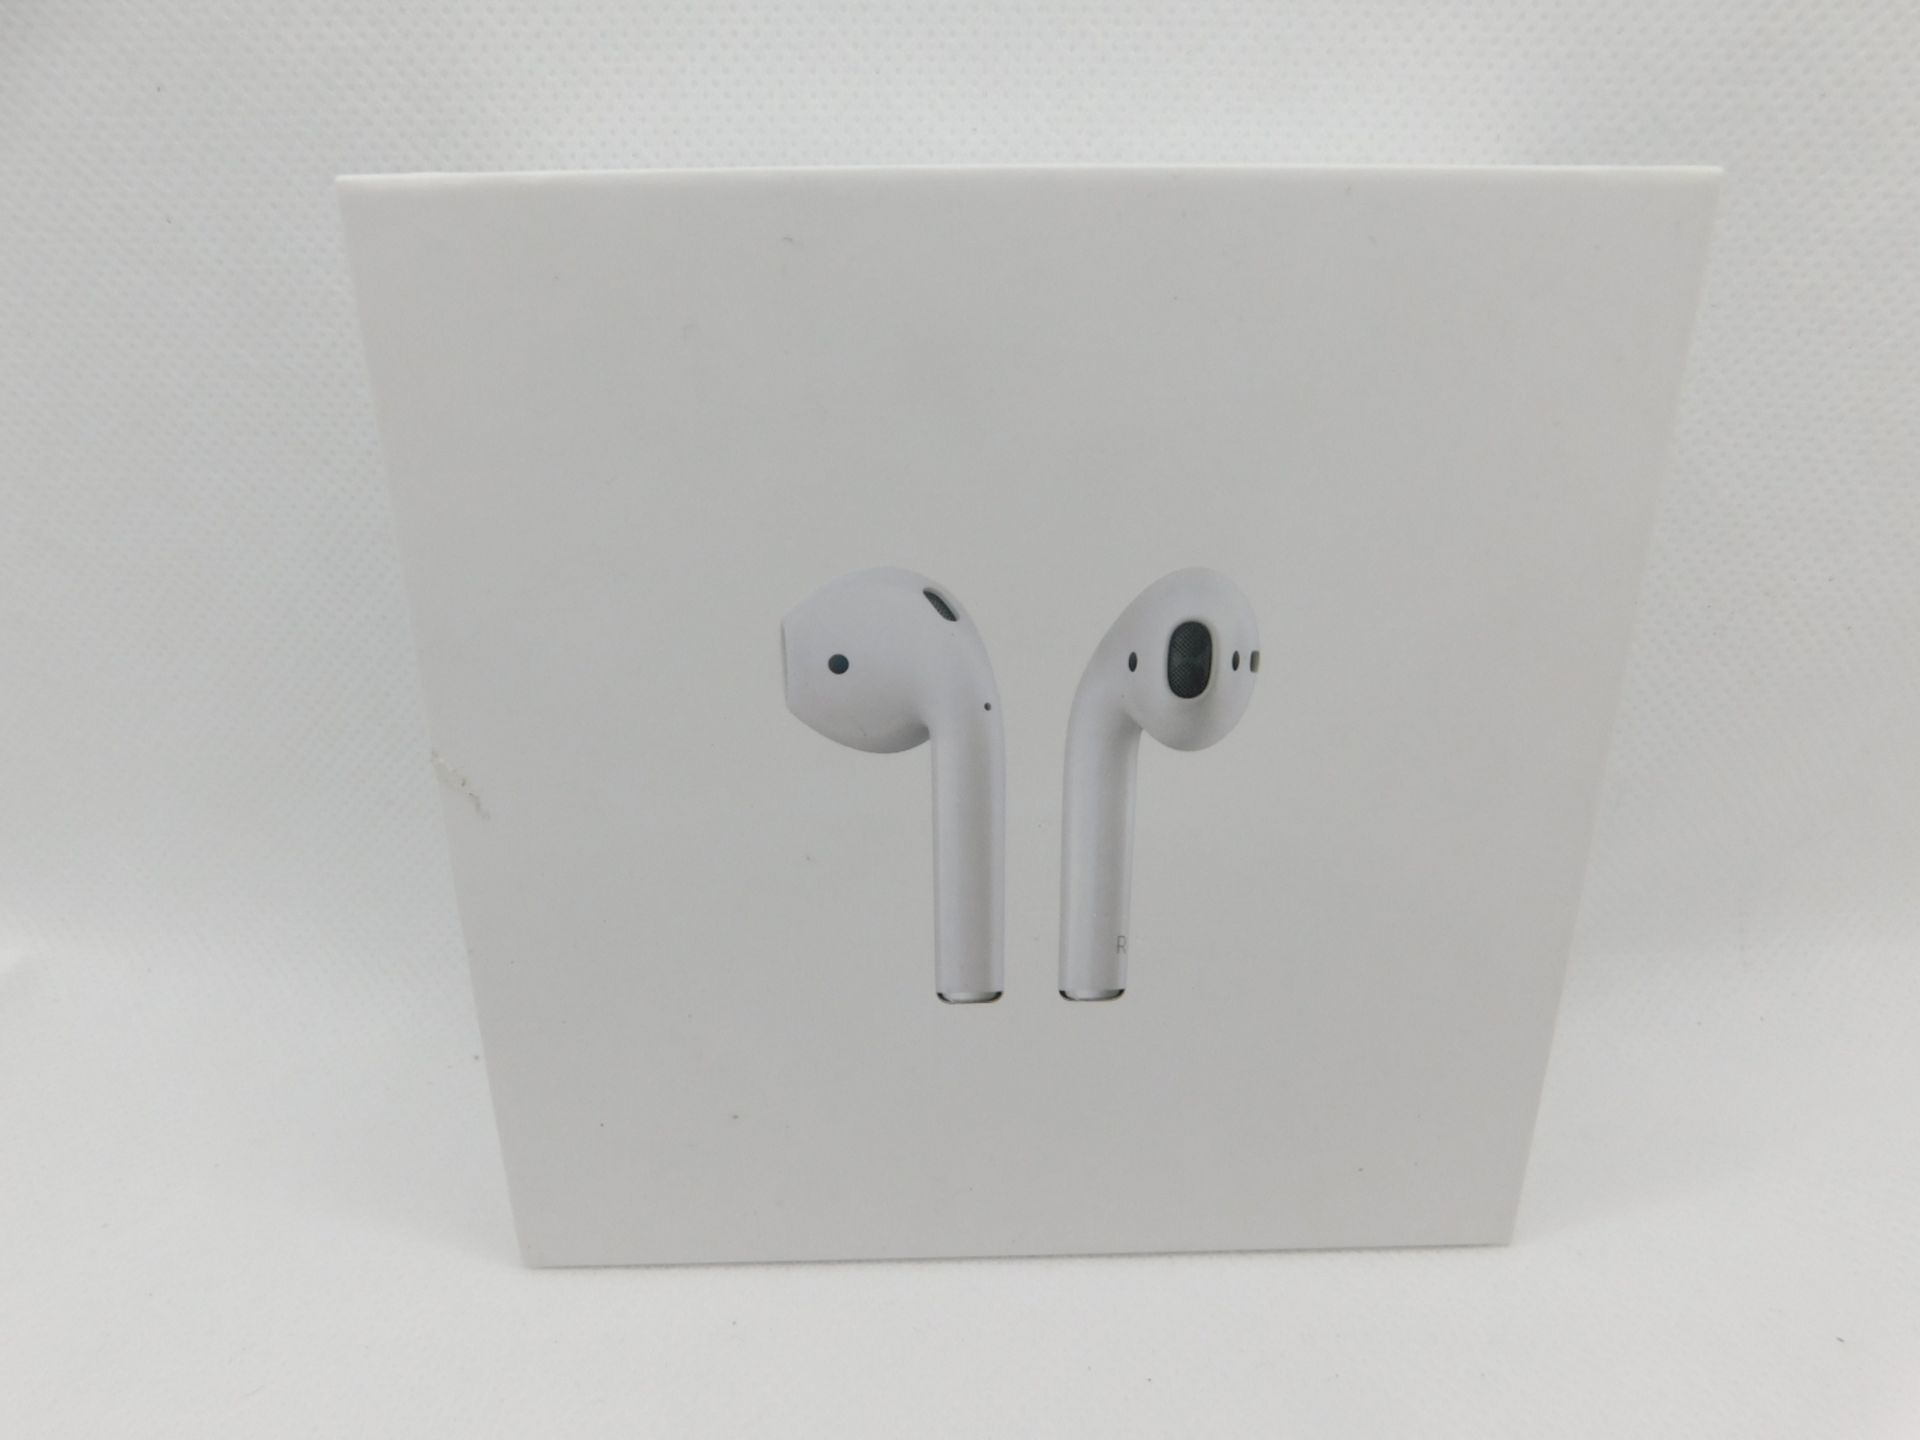 1 BOXED PAIR OF APPLE AIRPODS 2ND GENERATION BLUETOOTH EARPHONES WITH WIRLESS CHARGING CASE RRP £